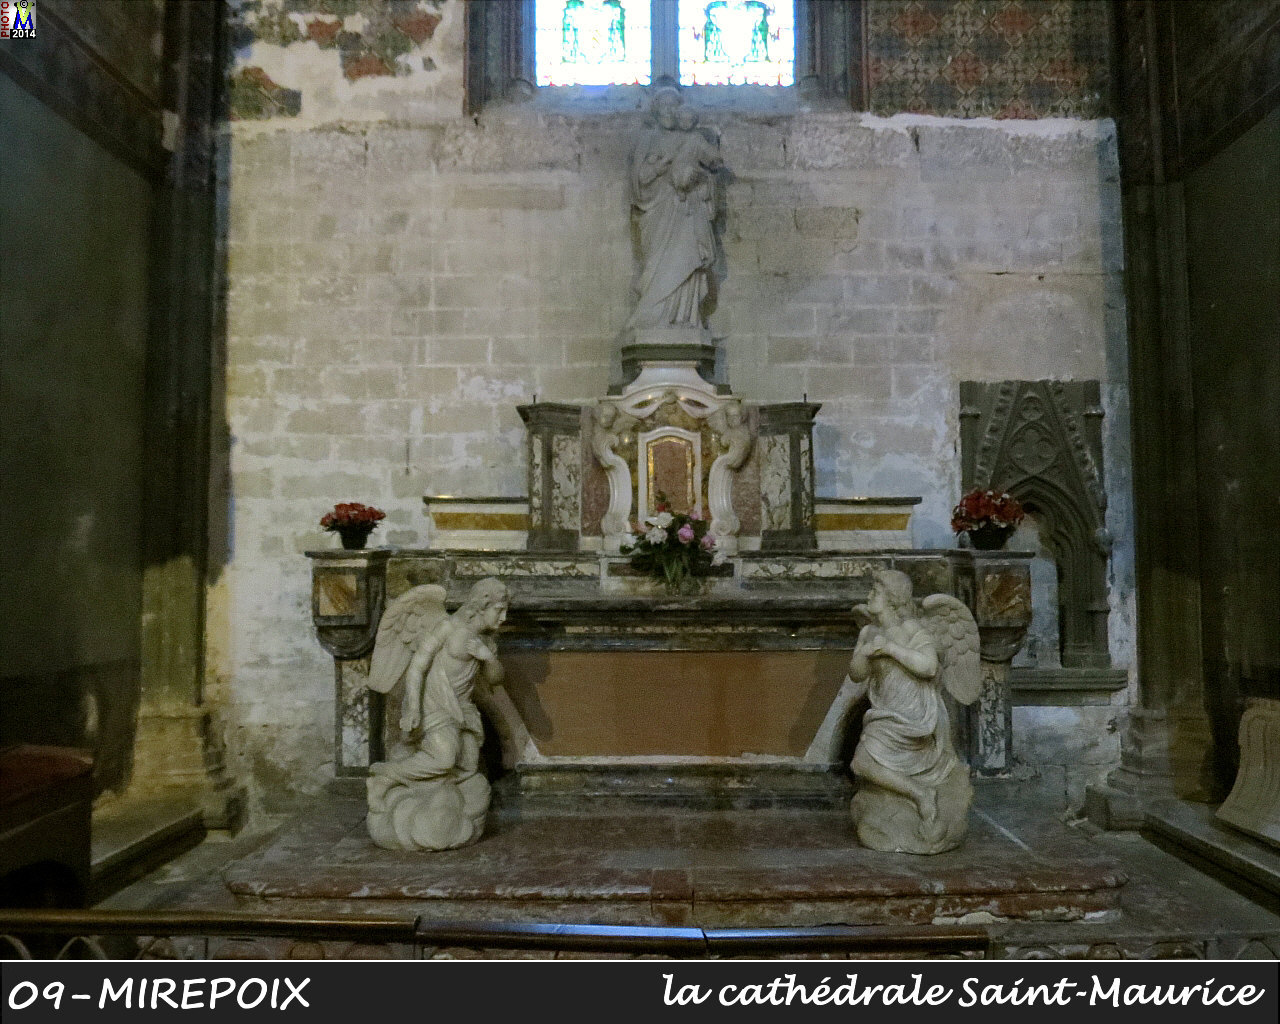 09MIREPOIX_cathedrale_214.jpg